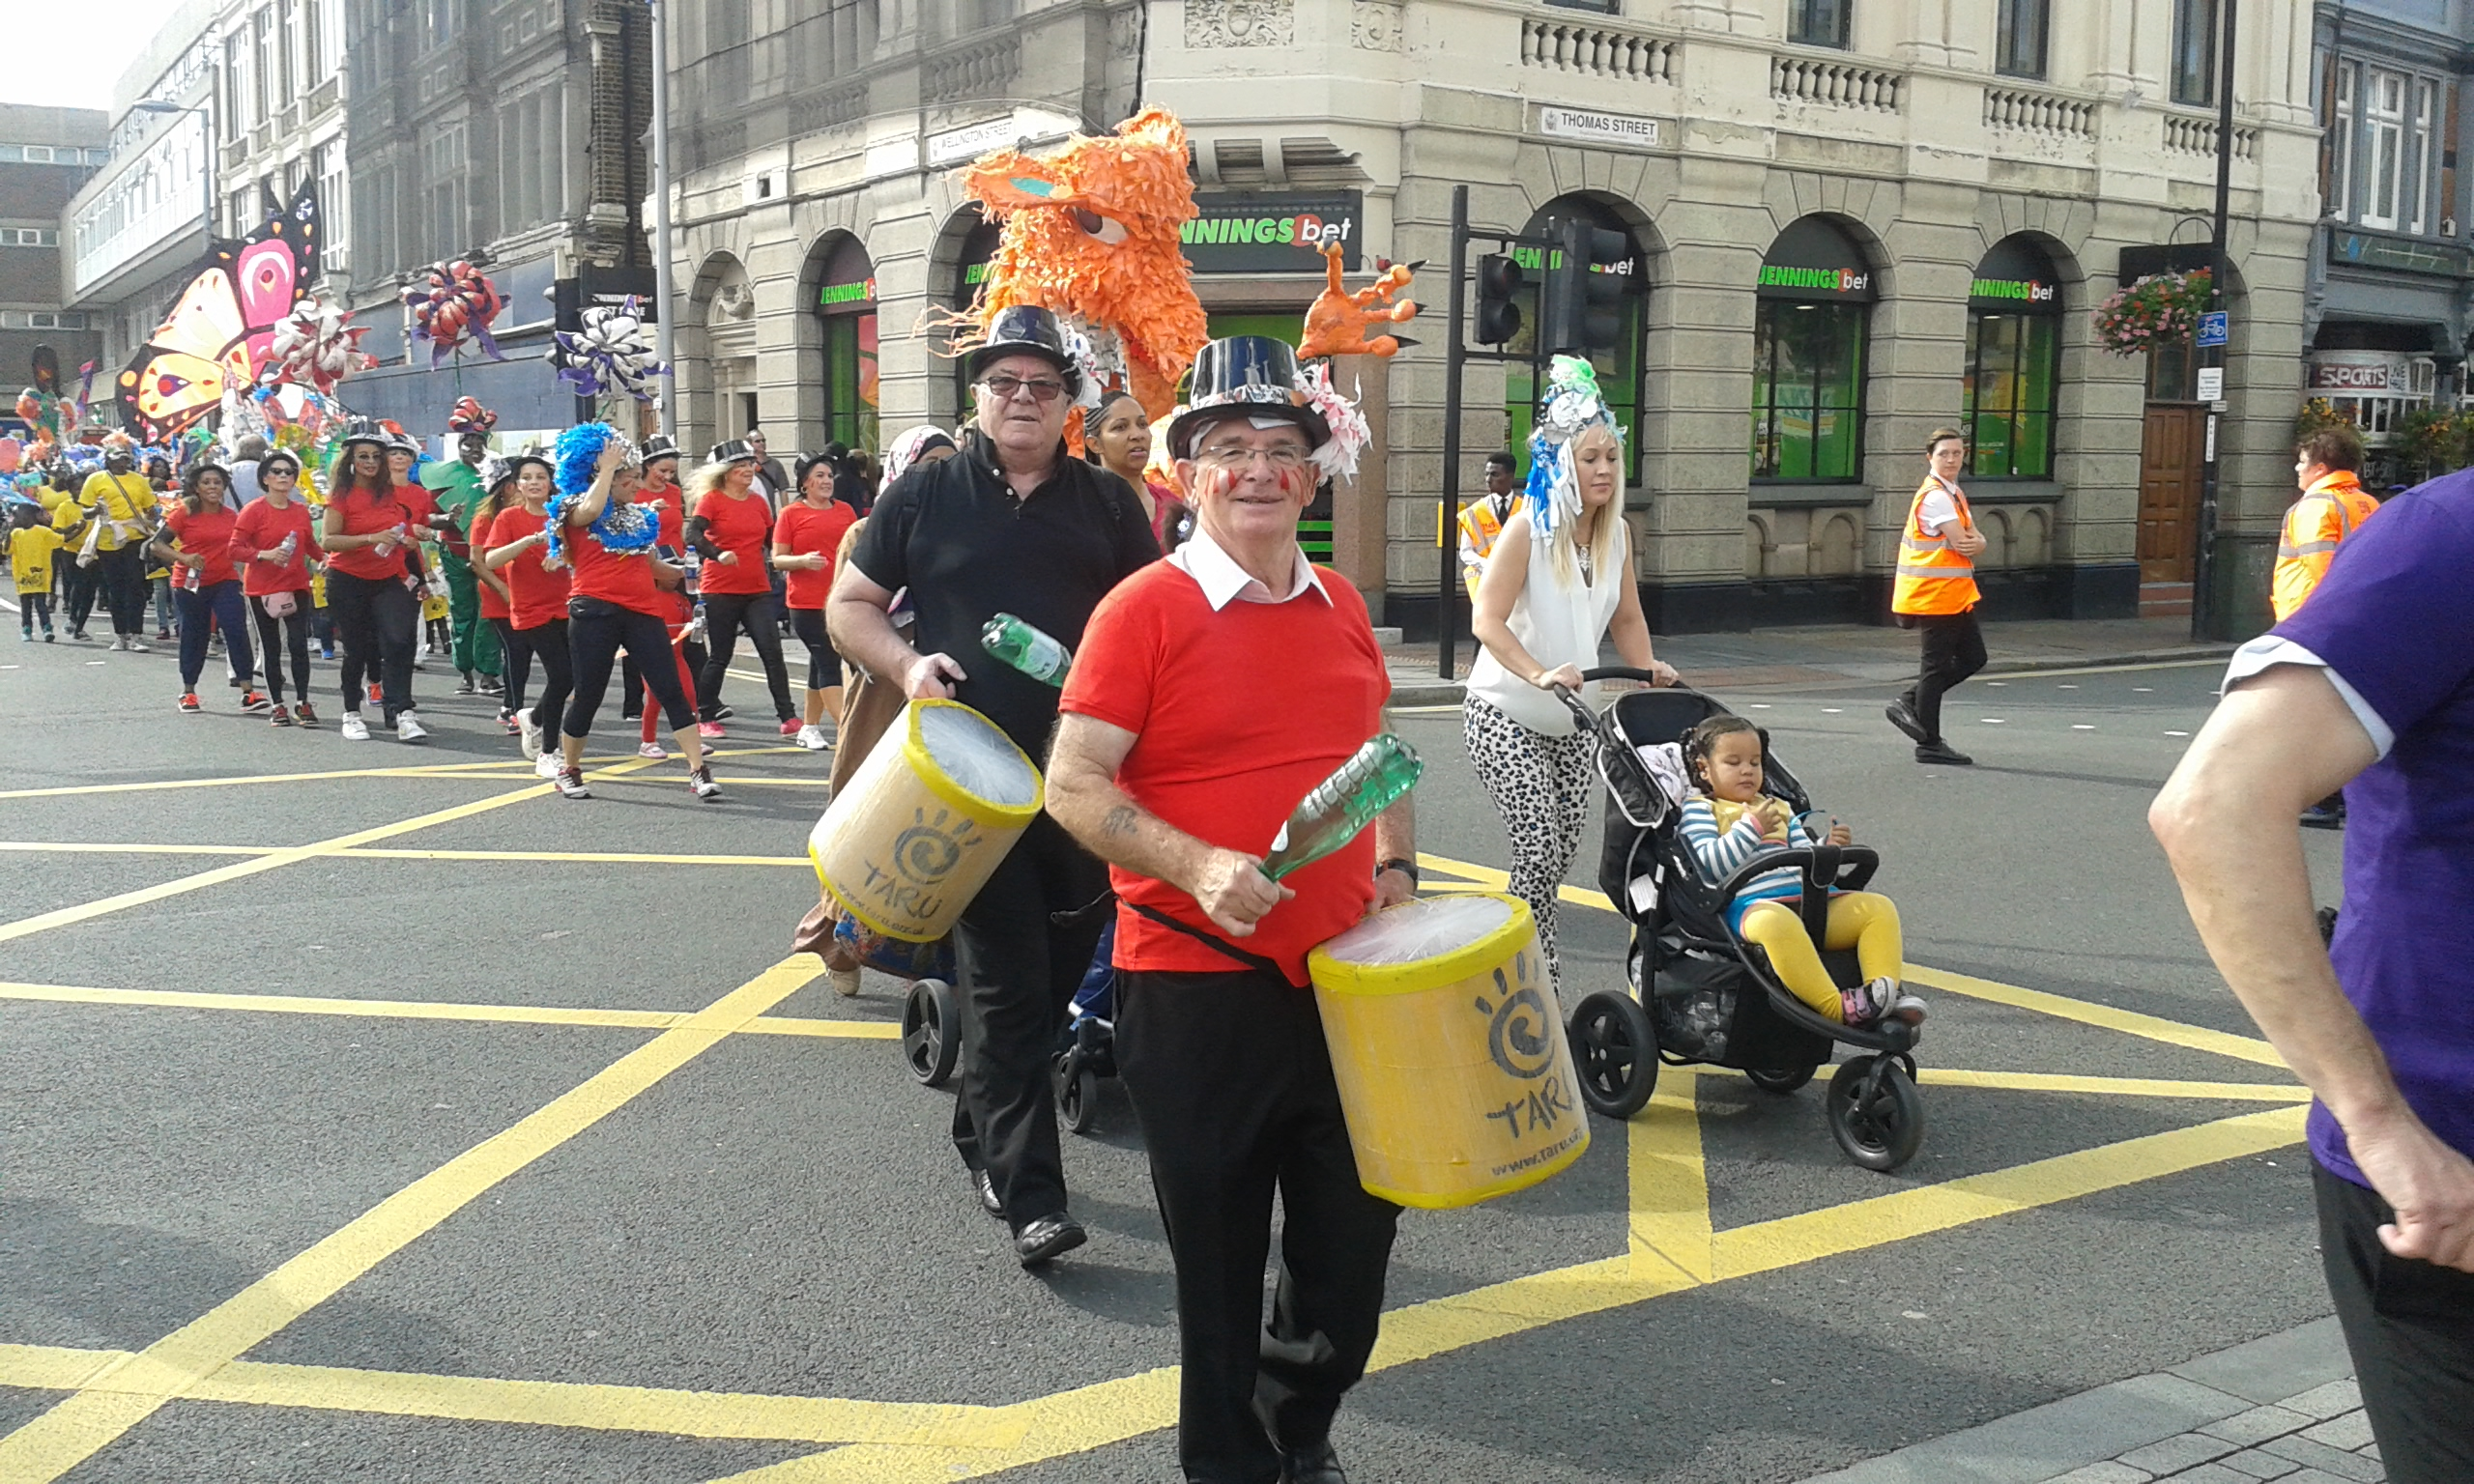 Drummers and dancers